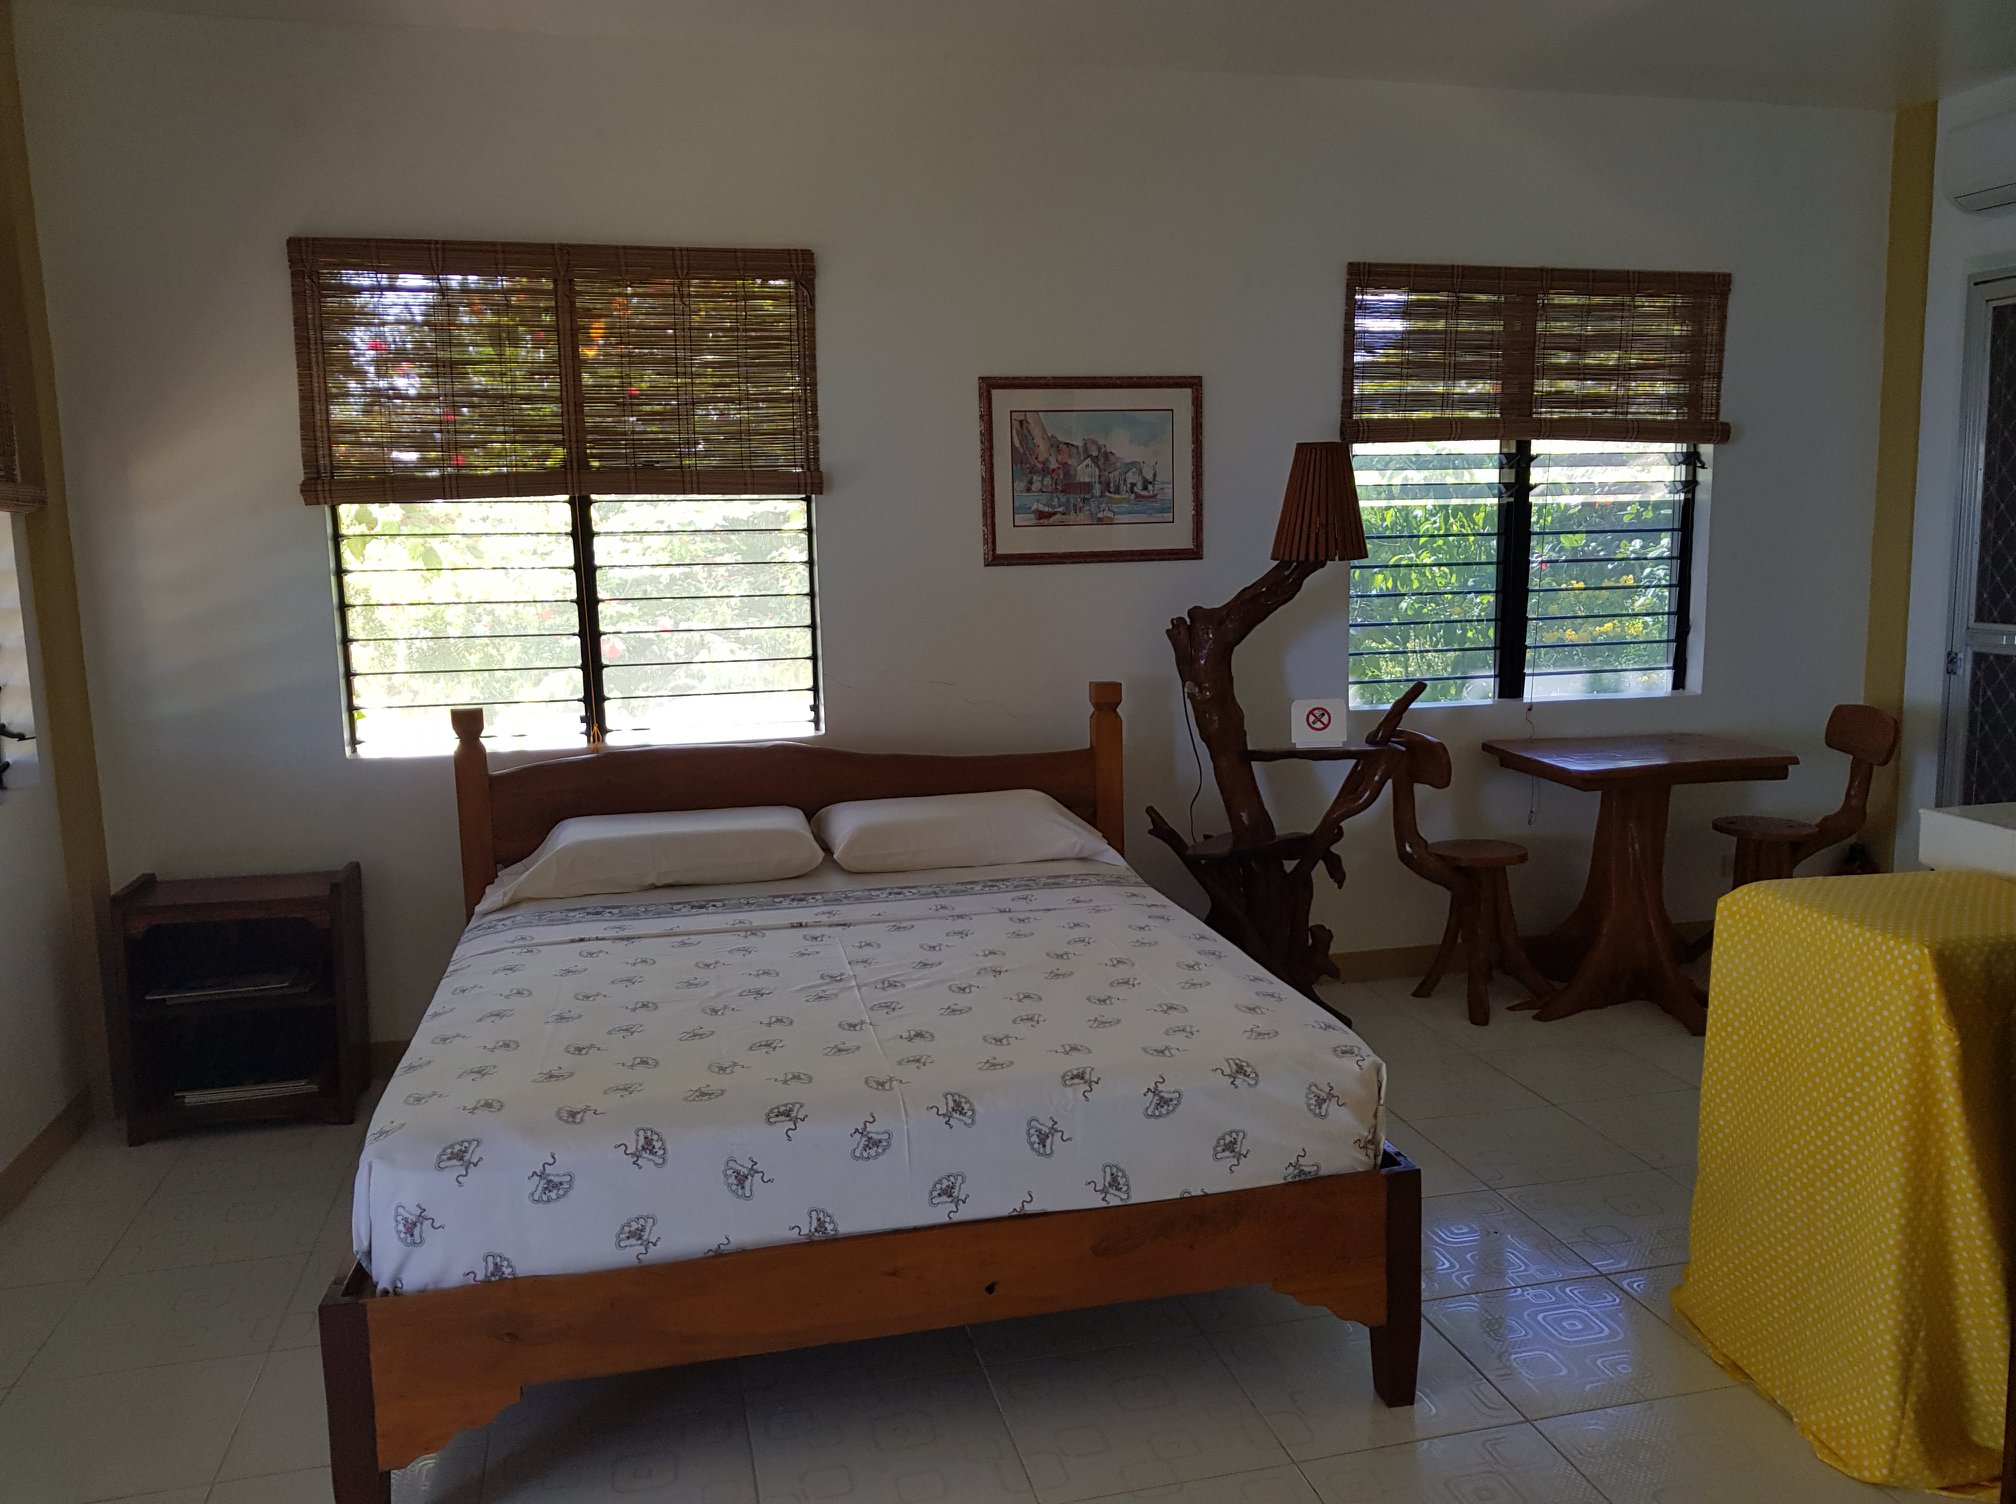 Pine 1 airconditioned Room. Photo from Sea Turtle Lagoon Resort's Facebook Page